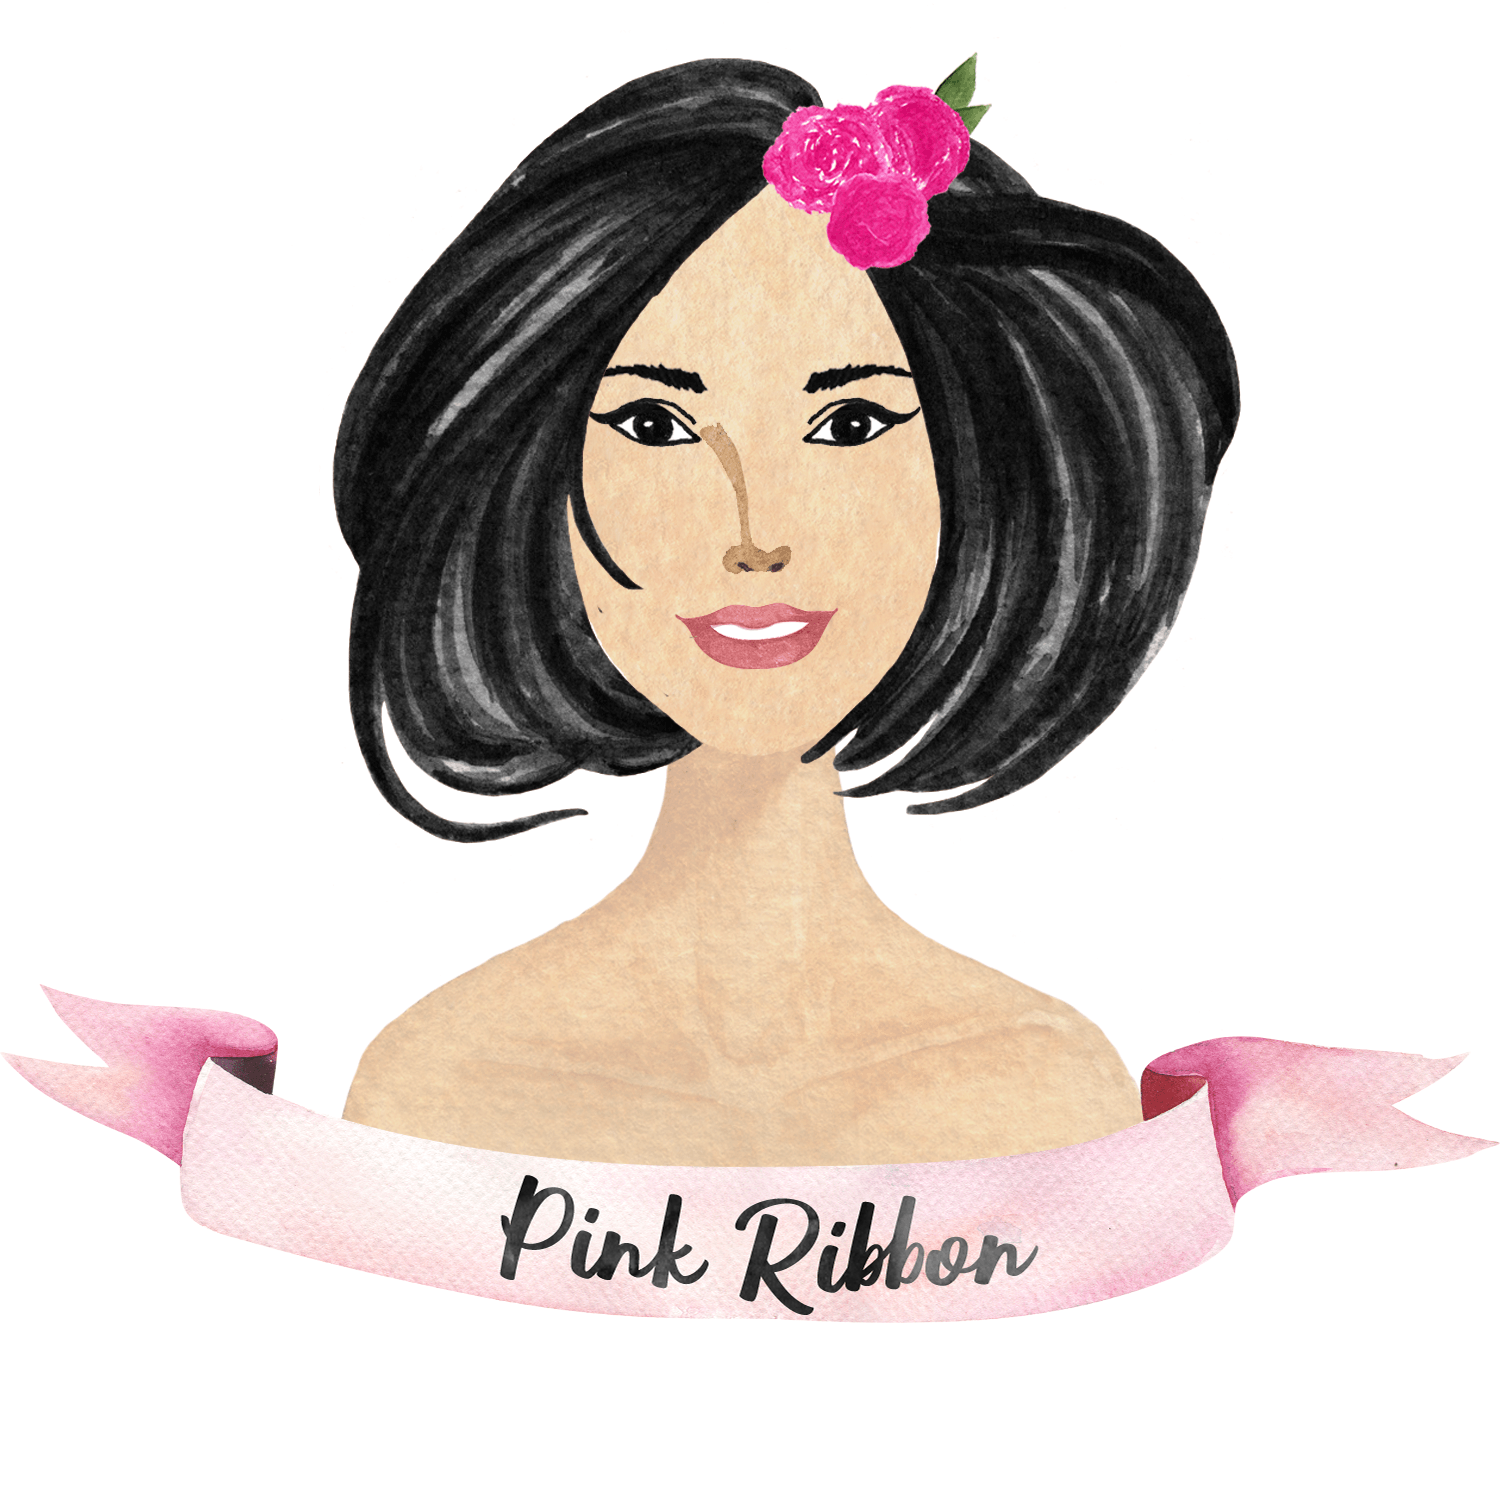 Pink Ribbon 01.png